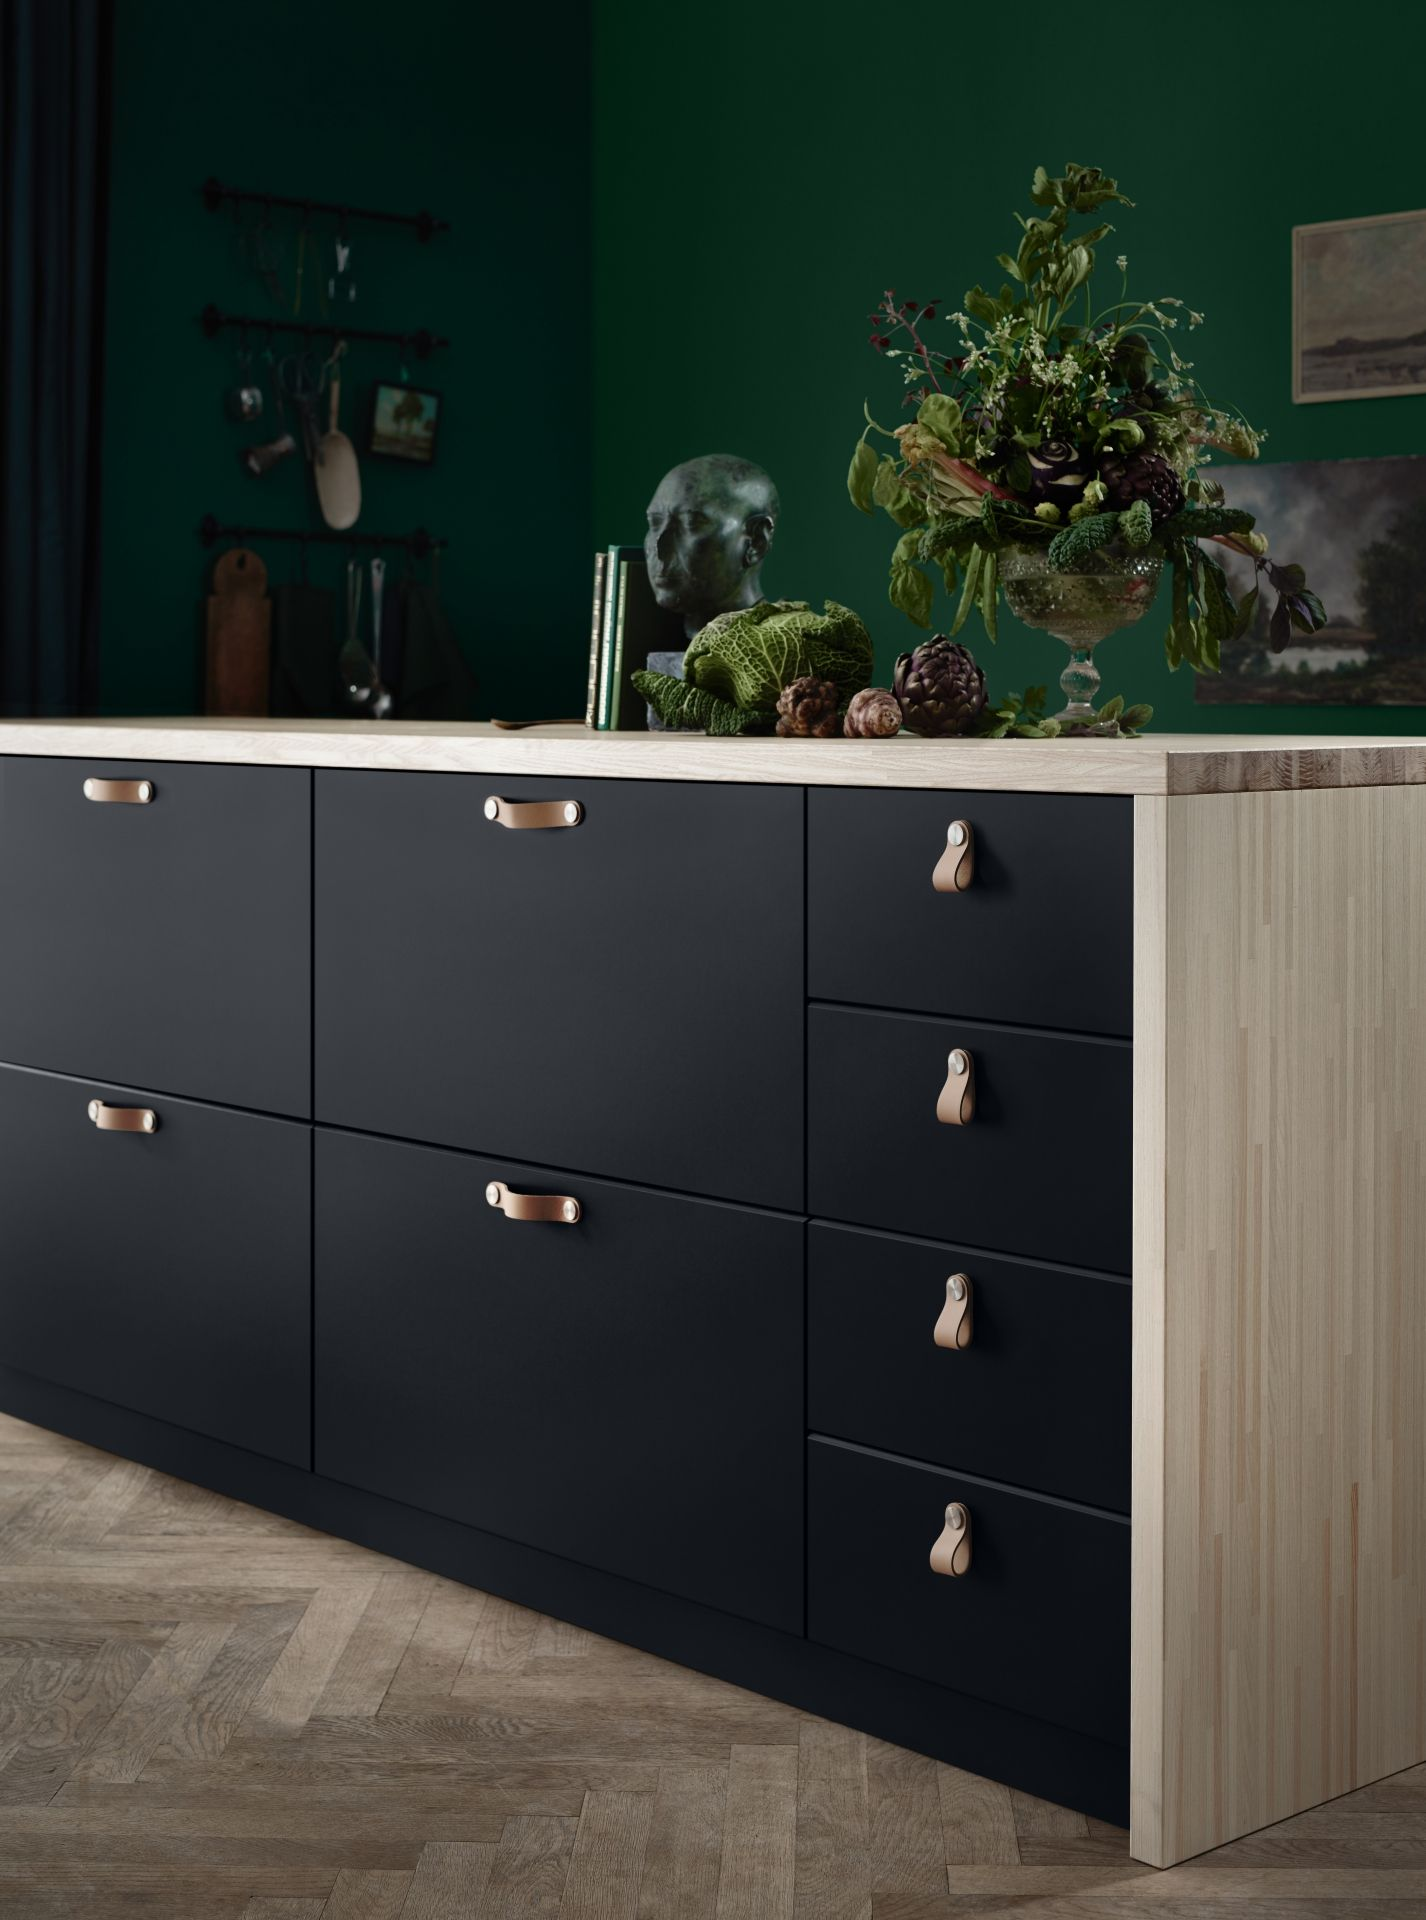 kungsbacka deur ikea ikeanl ikeanederland inspiratie wooninspiratie interieur wooninterieur. Black Bedroom Furniture Sets. Home Design Ideas